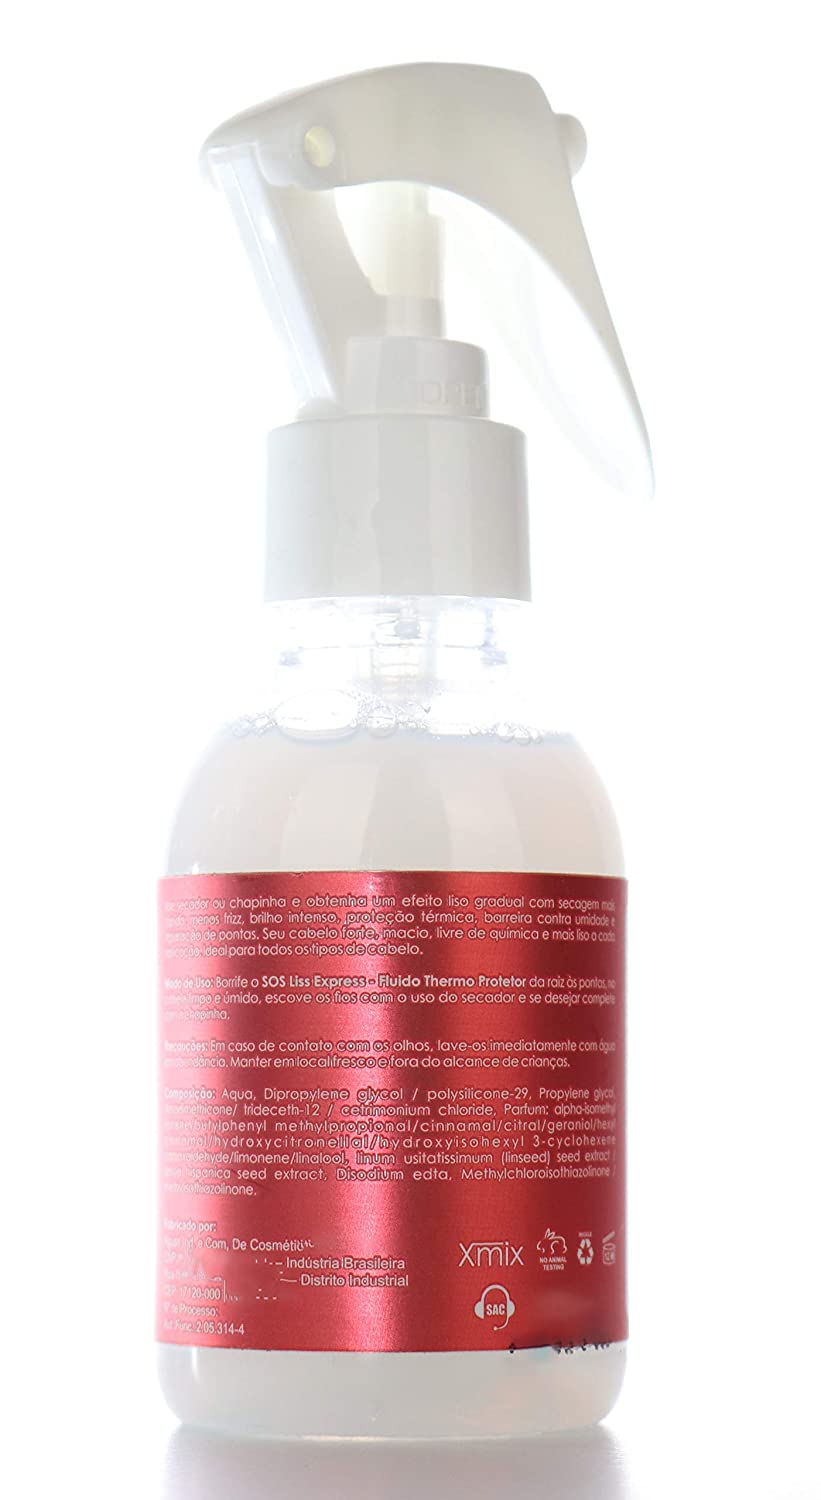 Amazon.com : Felps Professional SOS Liss Express Thermal protector. Use With Flat Irons, Hair Dryers & Hot Brush. 4.4 OZ / 100 ML : Beauty